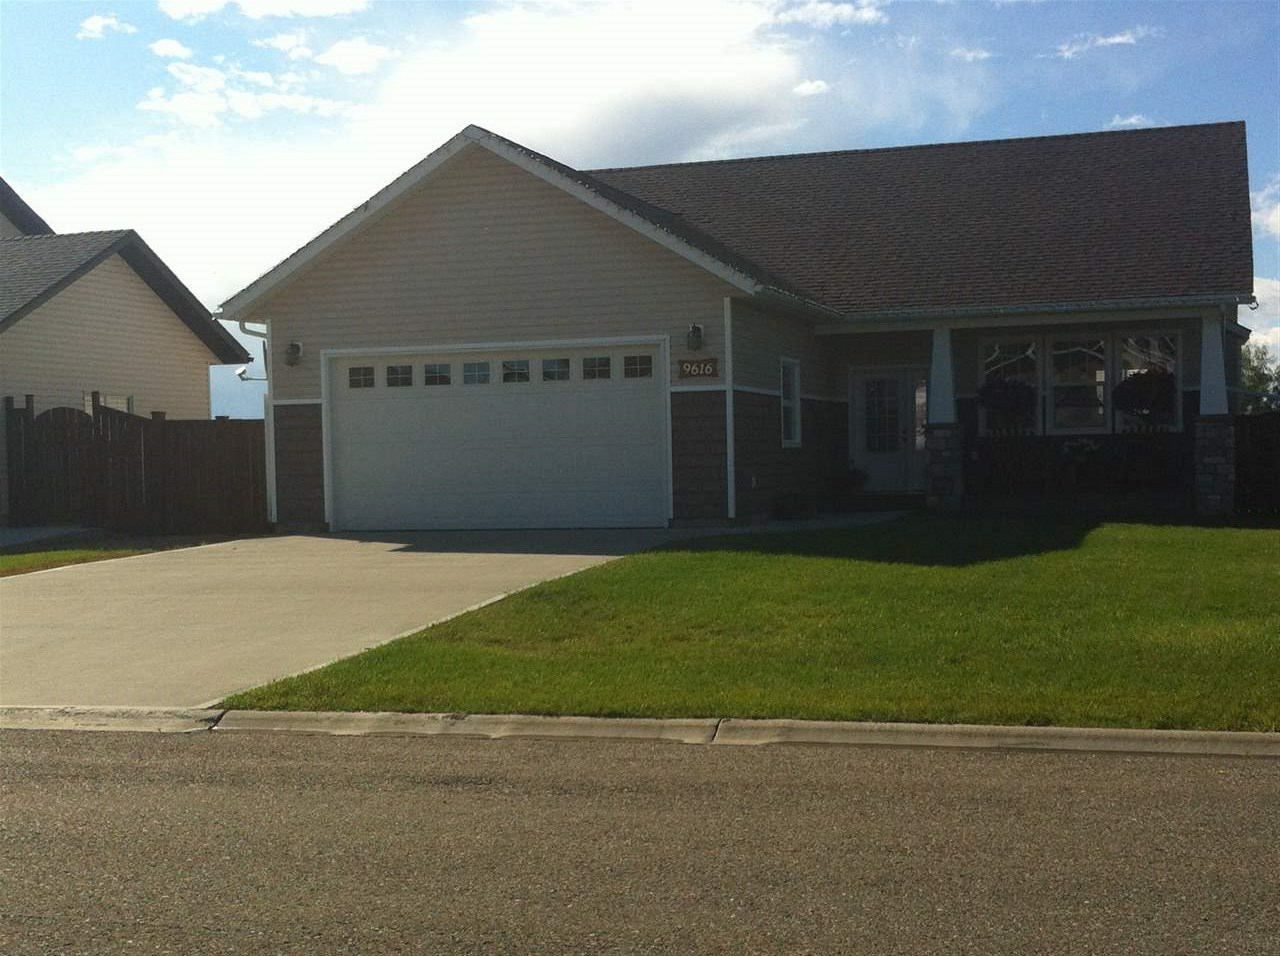 Main Photo: 9616 88TH Street in FT ST JOHN: Fort St. John - City SE House for sale (Fort St. John (Zone 60))  : MLS® # N248411